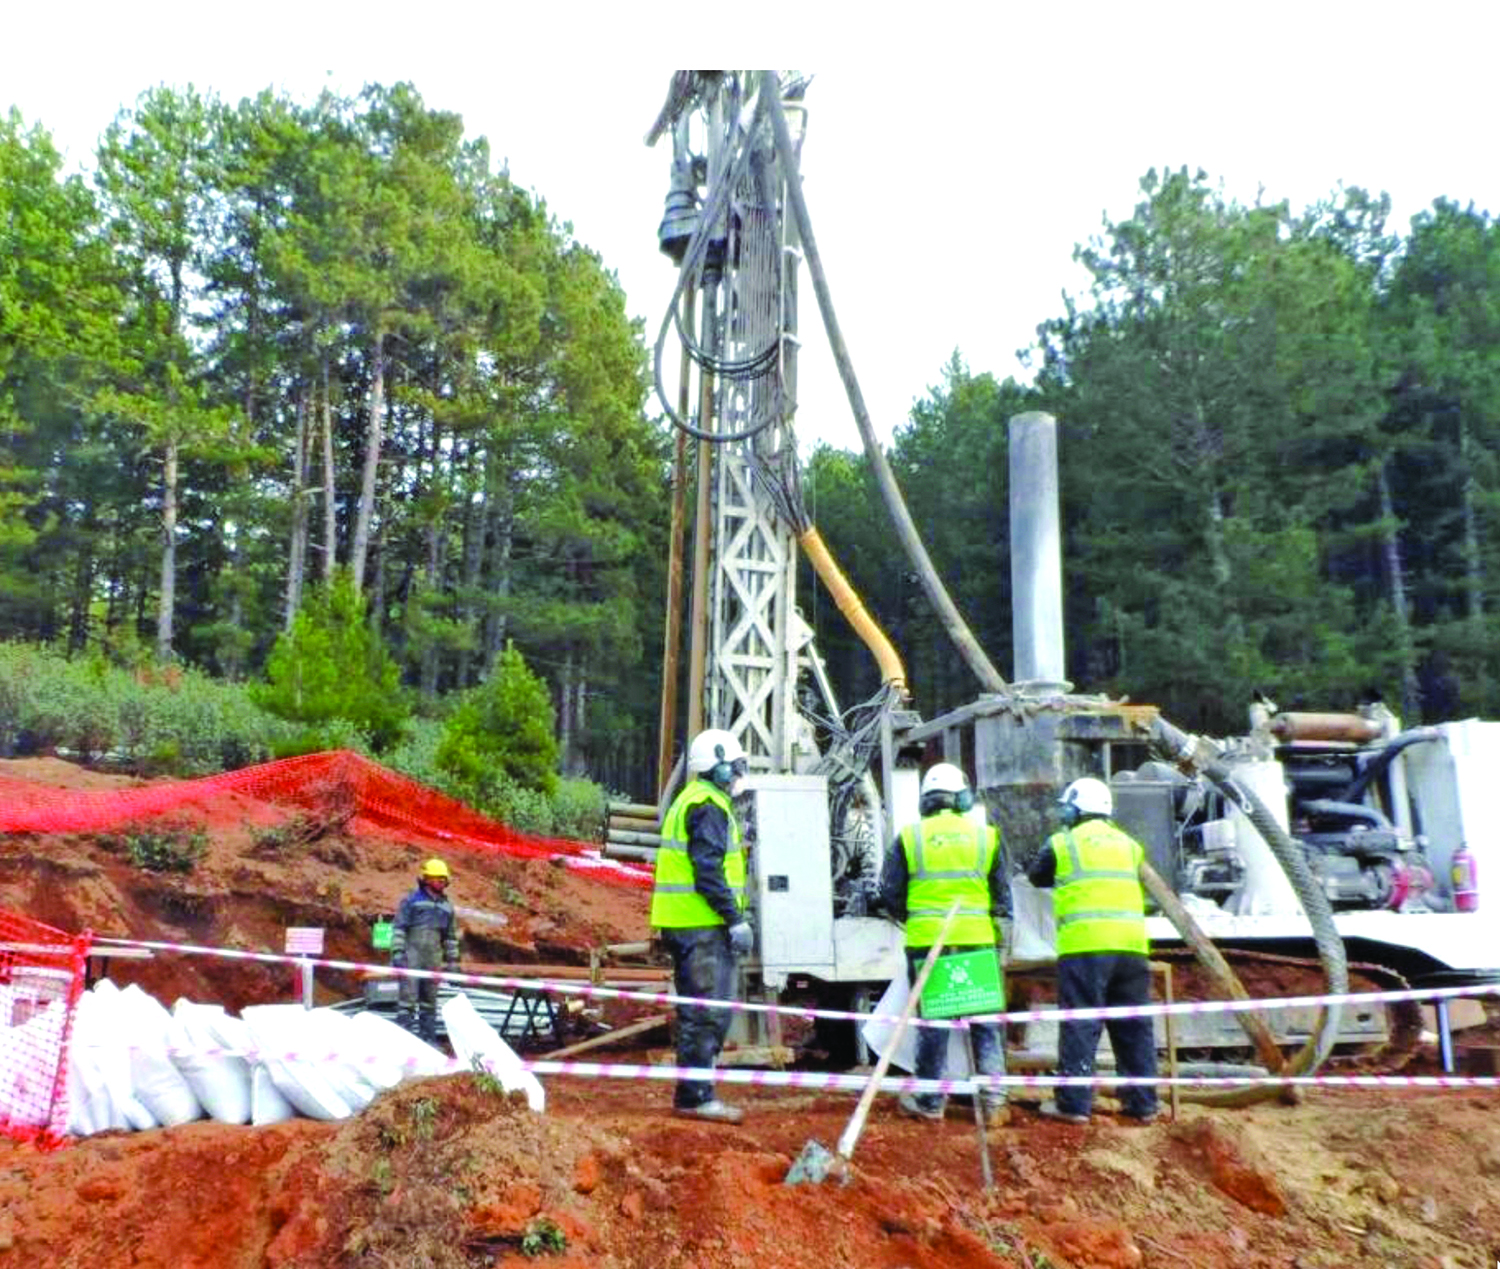 A drill crew sinks exploration holes for the Gediktepe polymetallic project 190 km south of Istanbul, Turkey. (Photo: Alacer Gold)